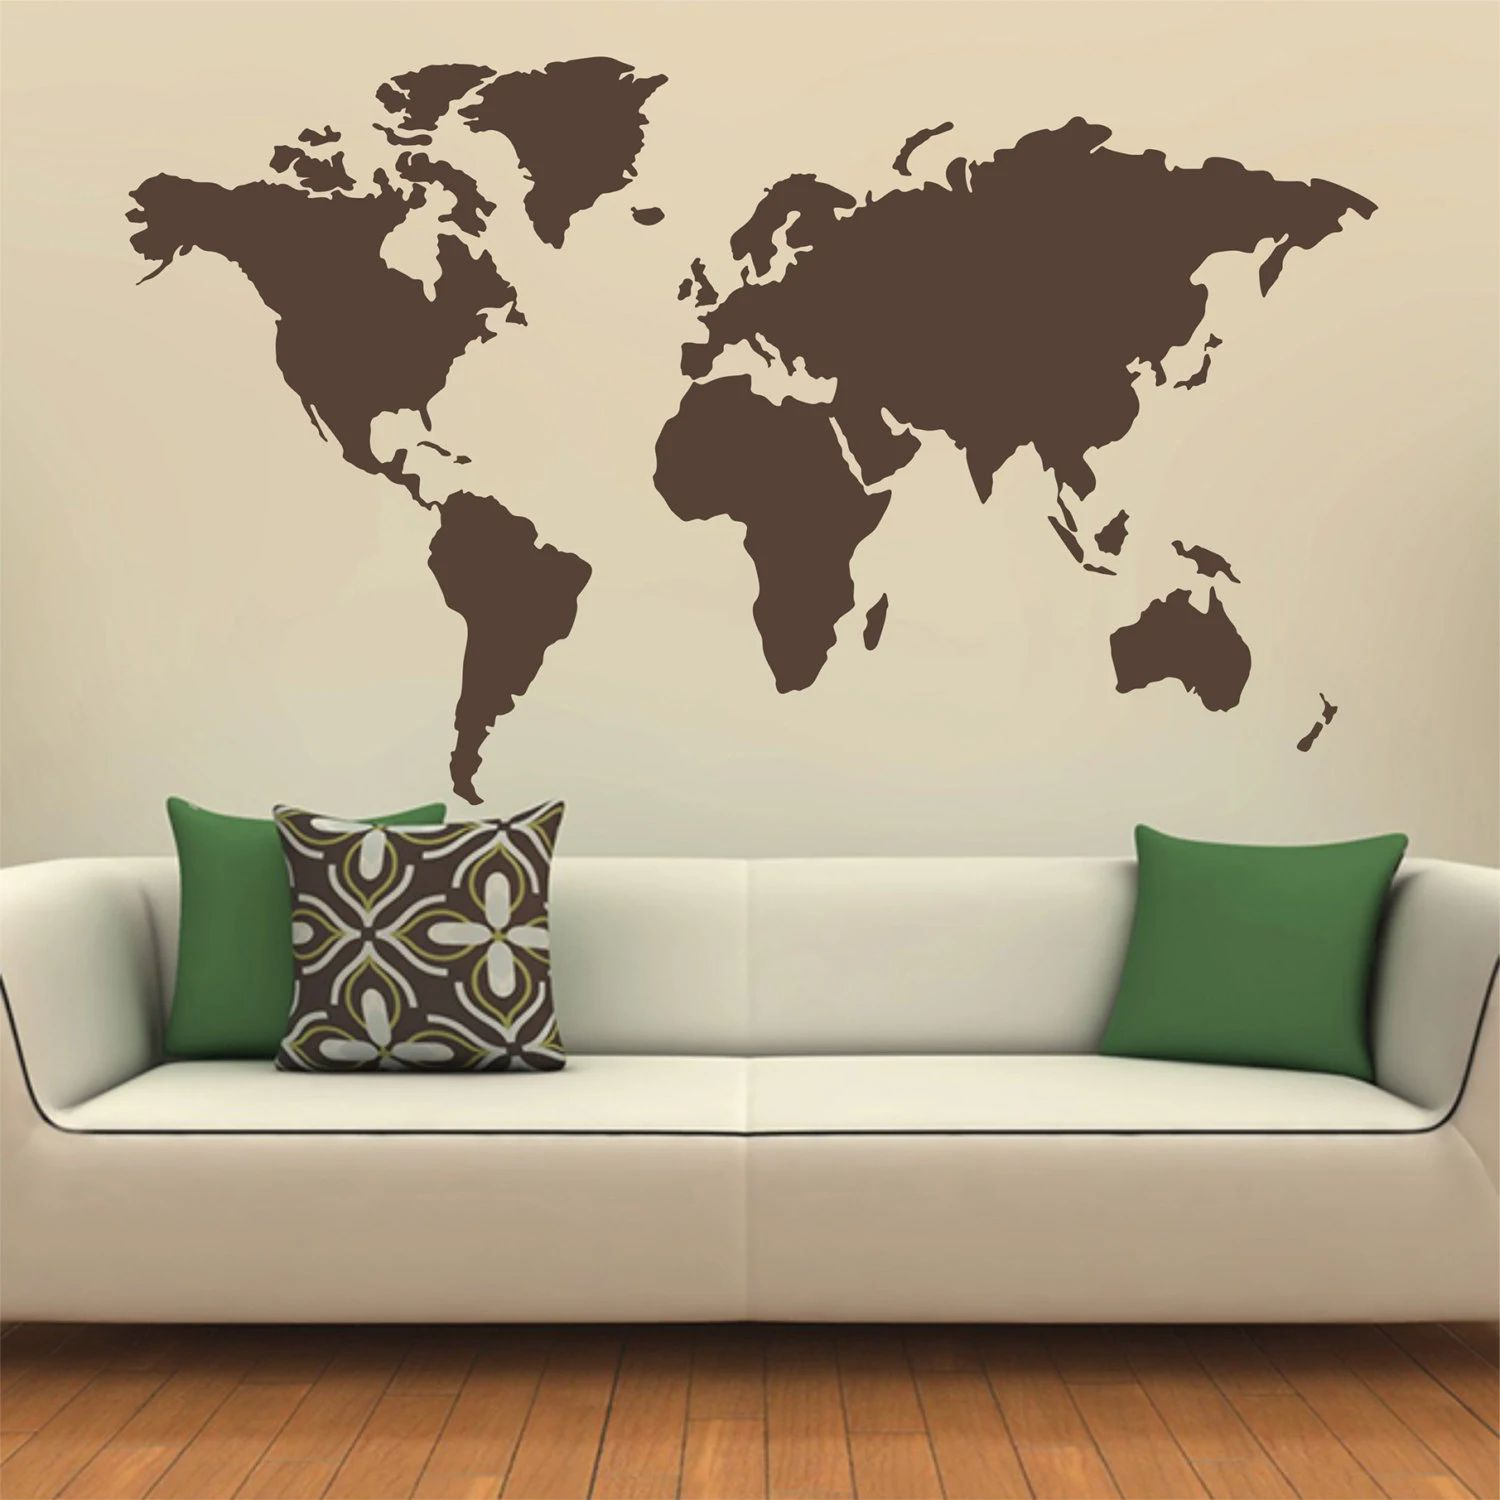 Map of the world silhouette wall decal globe wall decal wall map decal